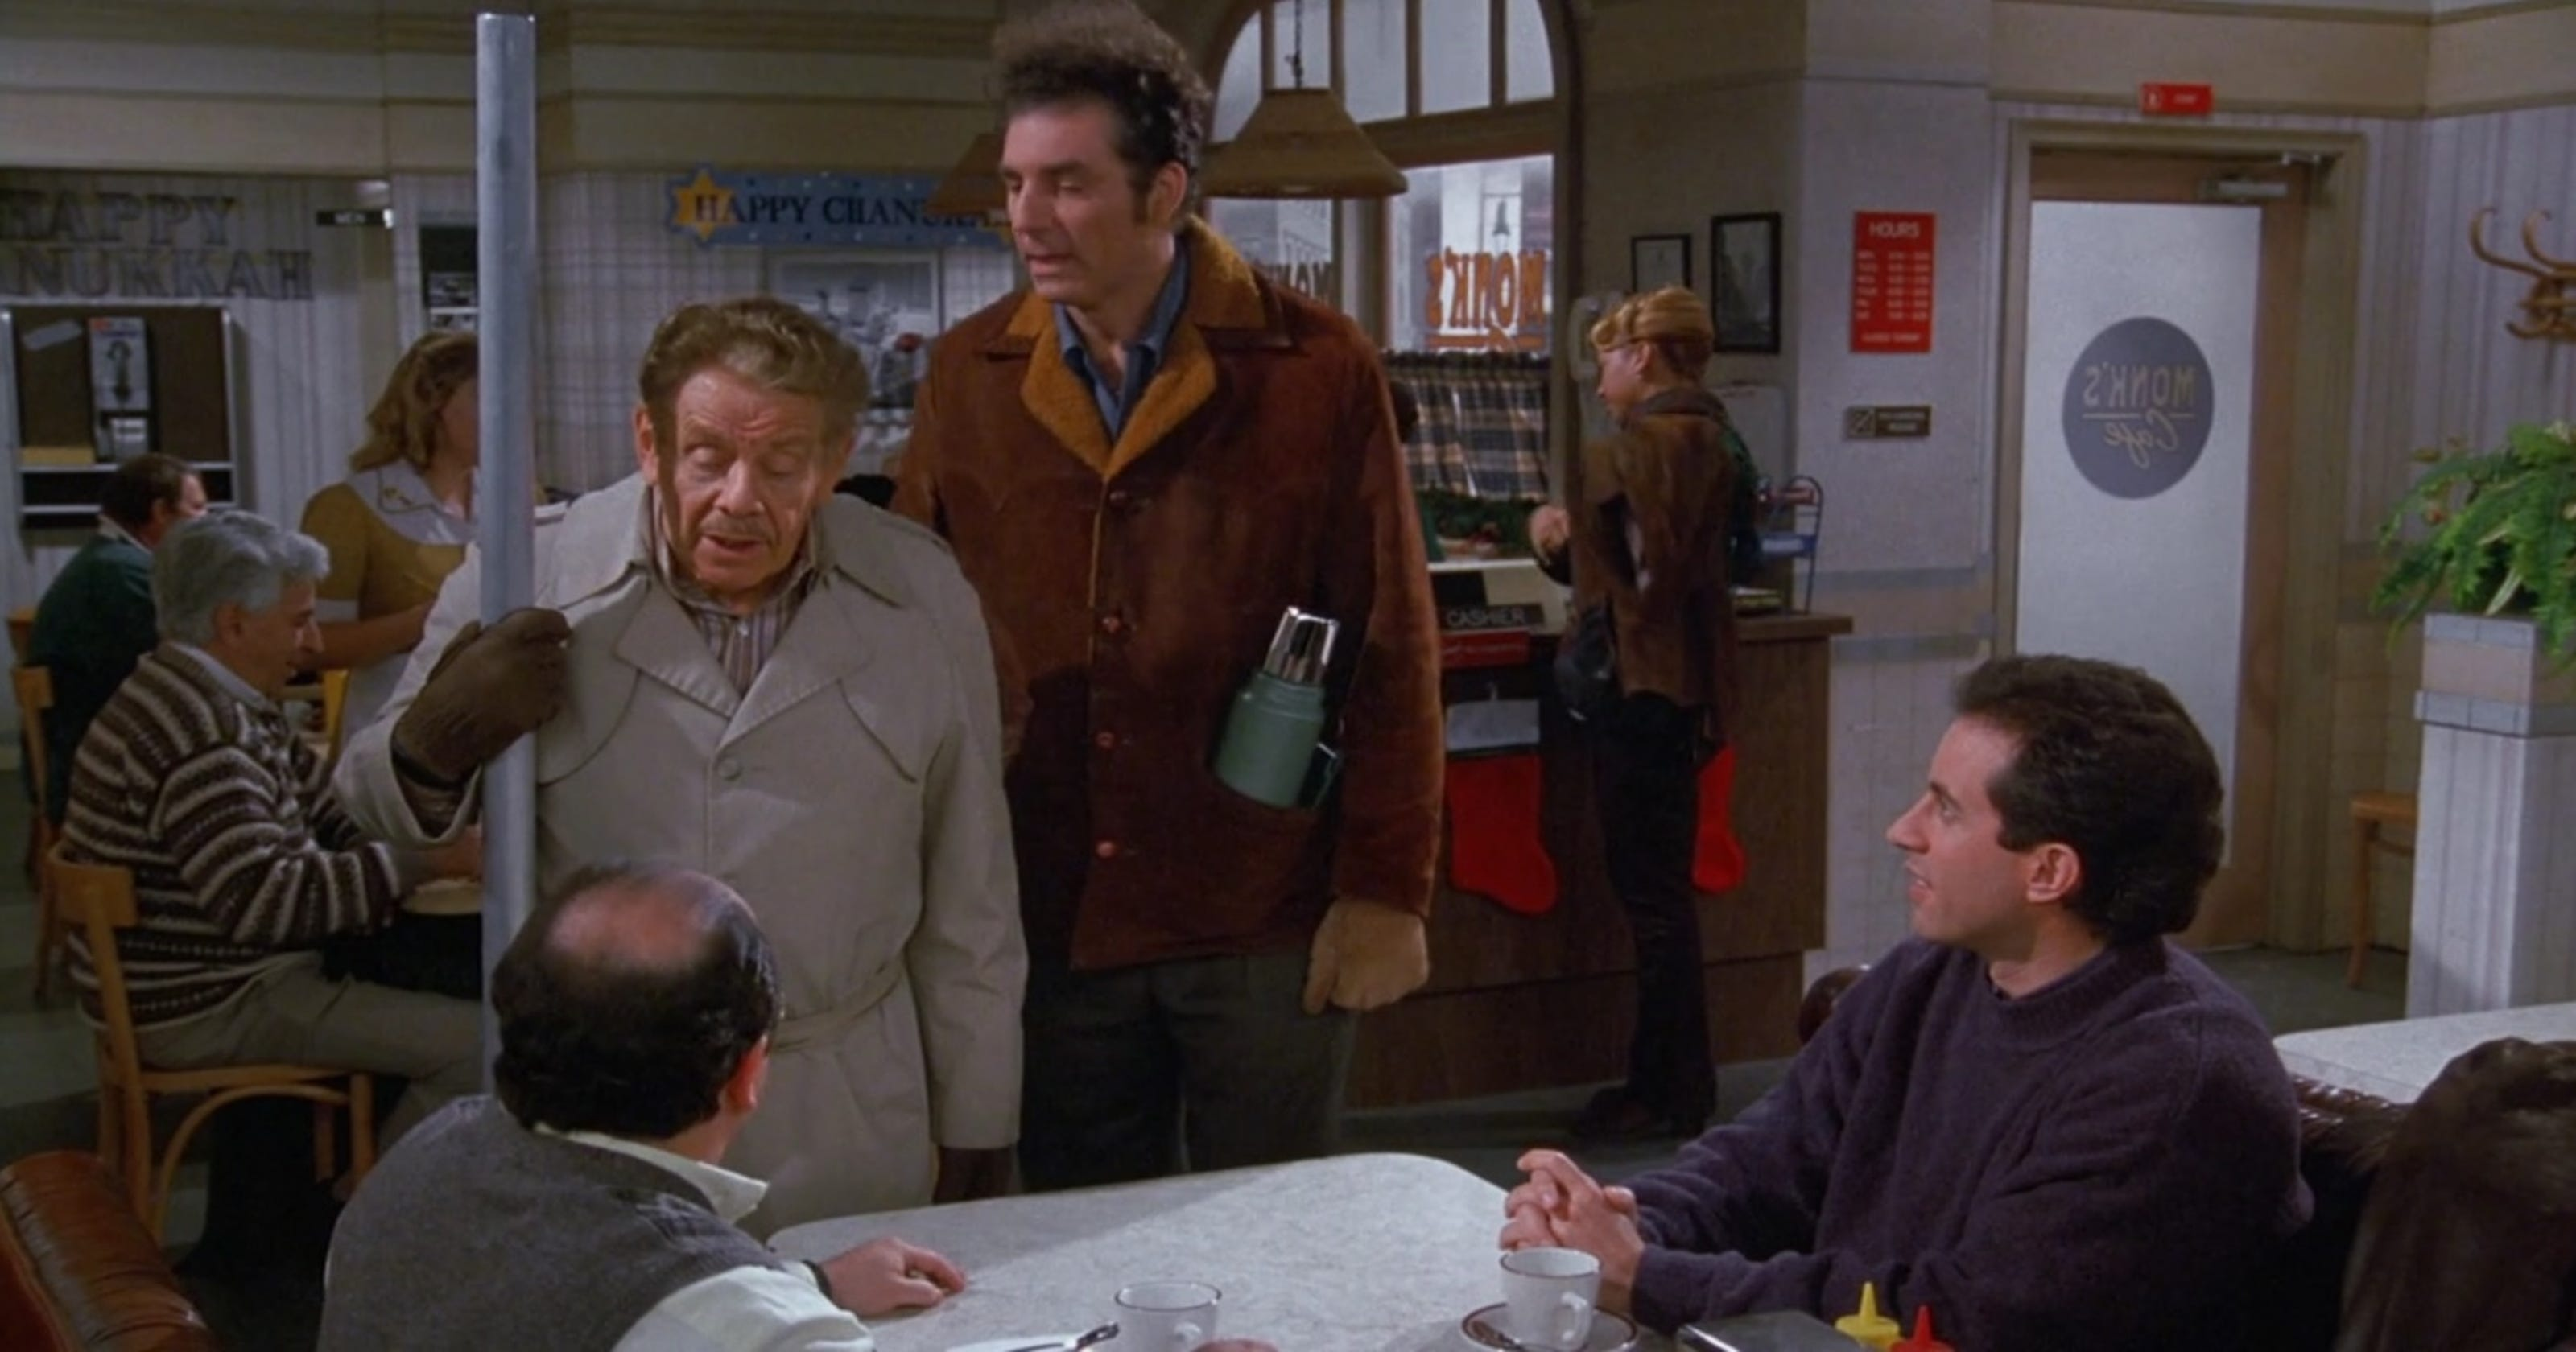 seinfeld wishes viewers a happy festivus